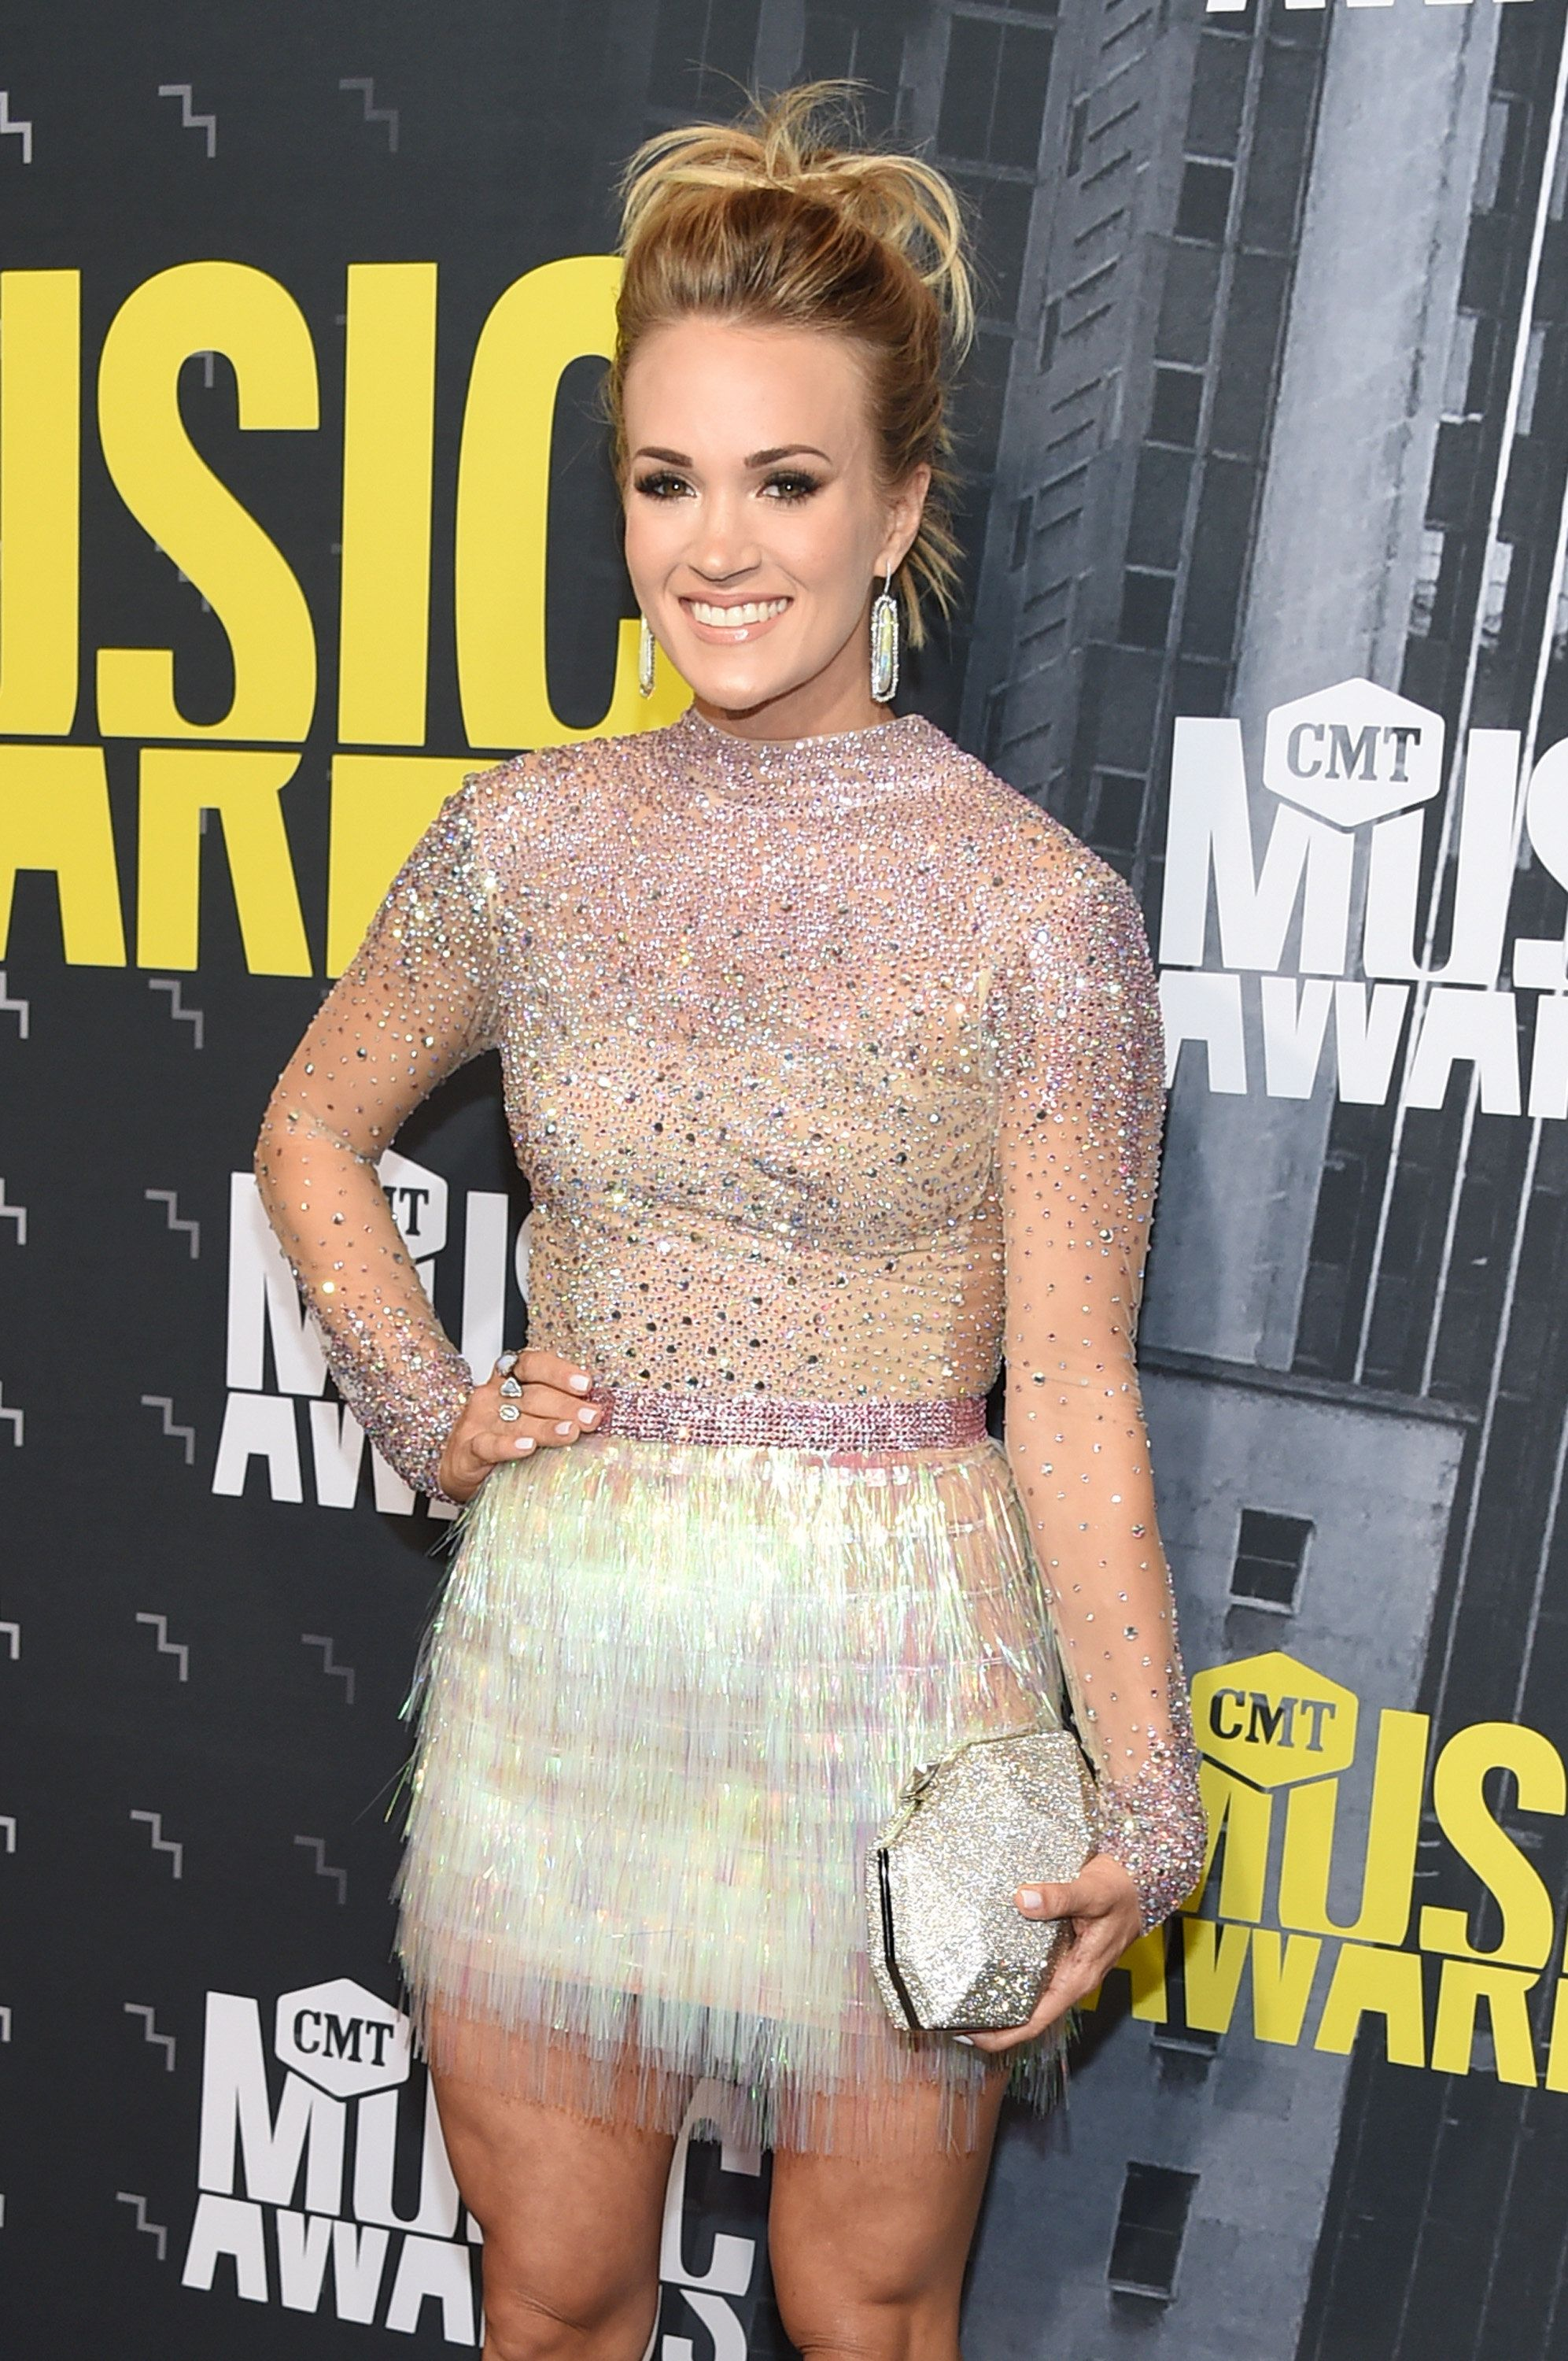 NASHVILLE, TN - JUNE 07:  Singer-songwriter Carrie Underwood attends the 2017 CMT Music Awards at the Music City Center on June 7, 2017 in Nashville, Tennessee.  (Photo by Michael Loccisano/Getty Images For CMT)